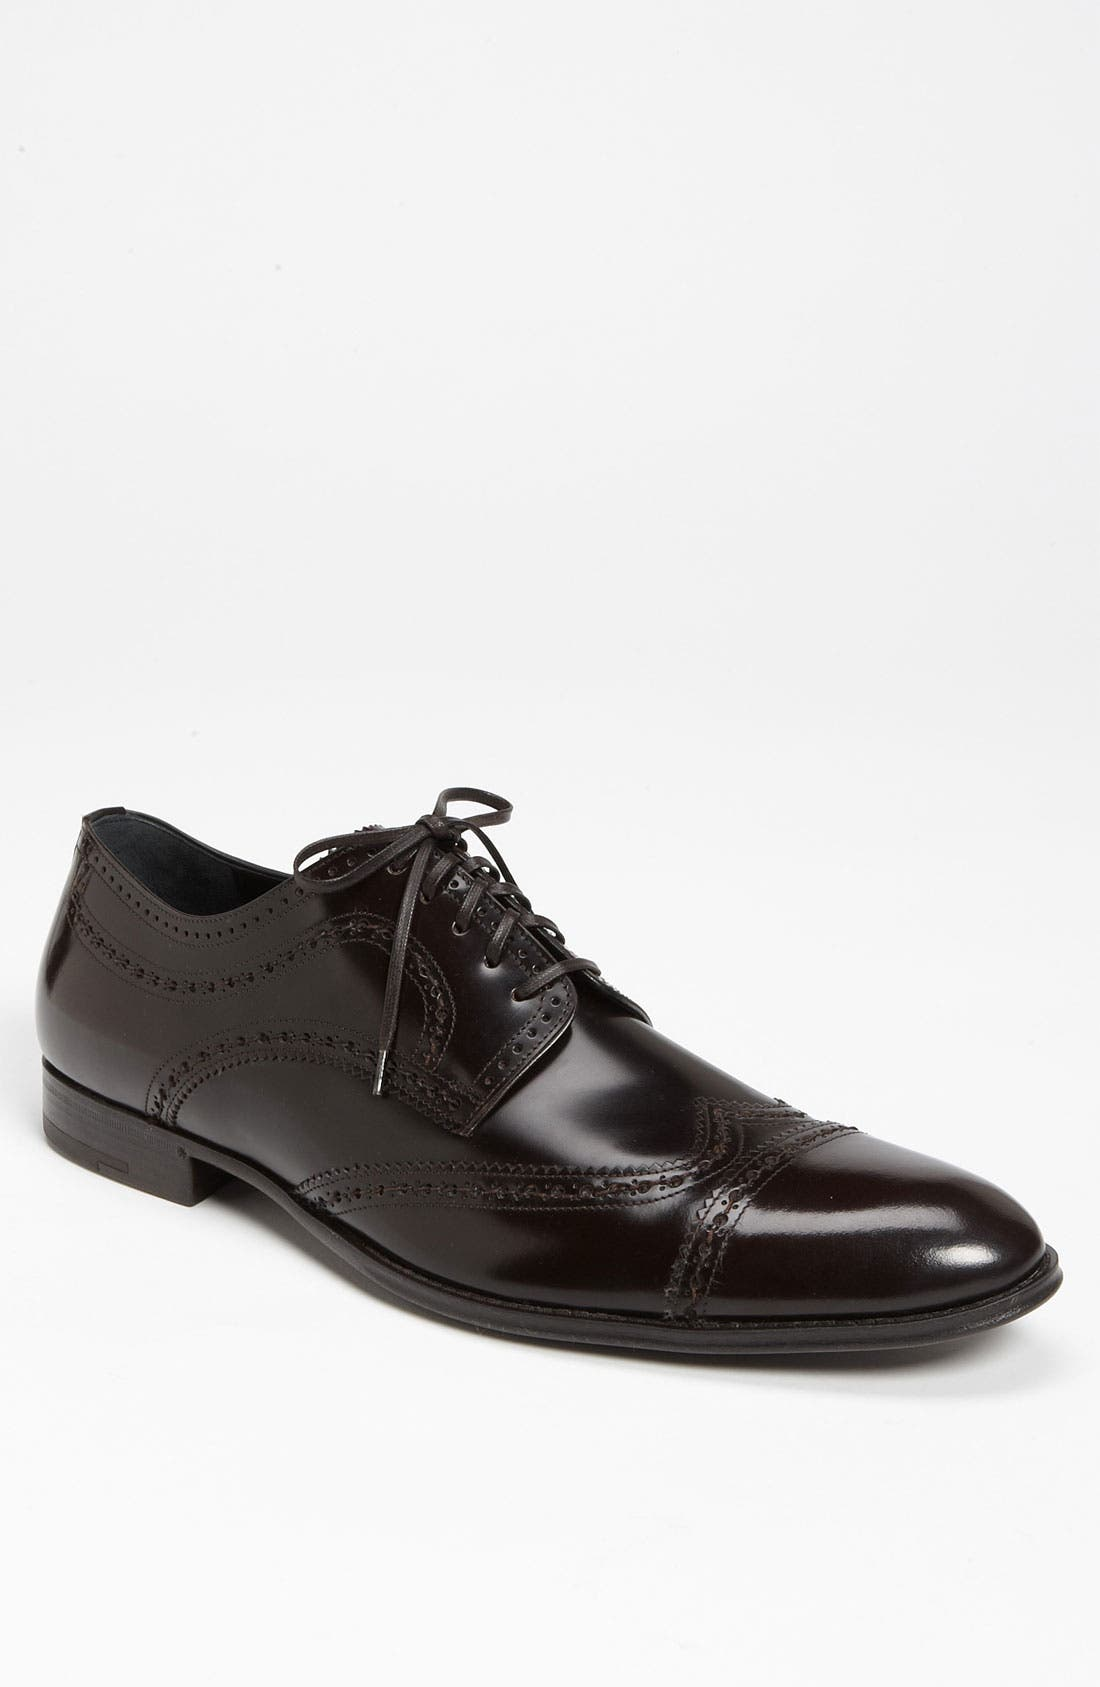 Alternate Image 1 Selected - Dolce&Gabbana Cap Toe Wingtip